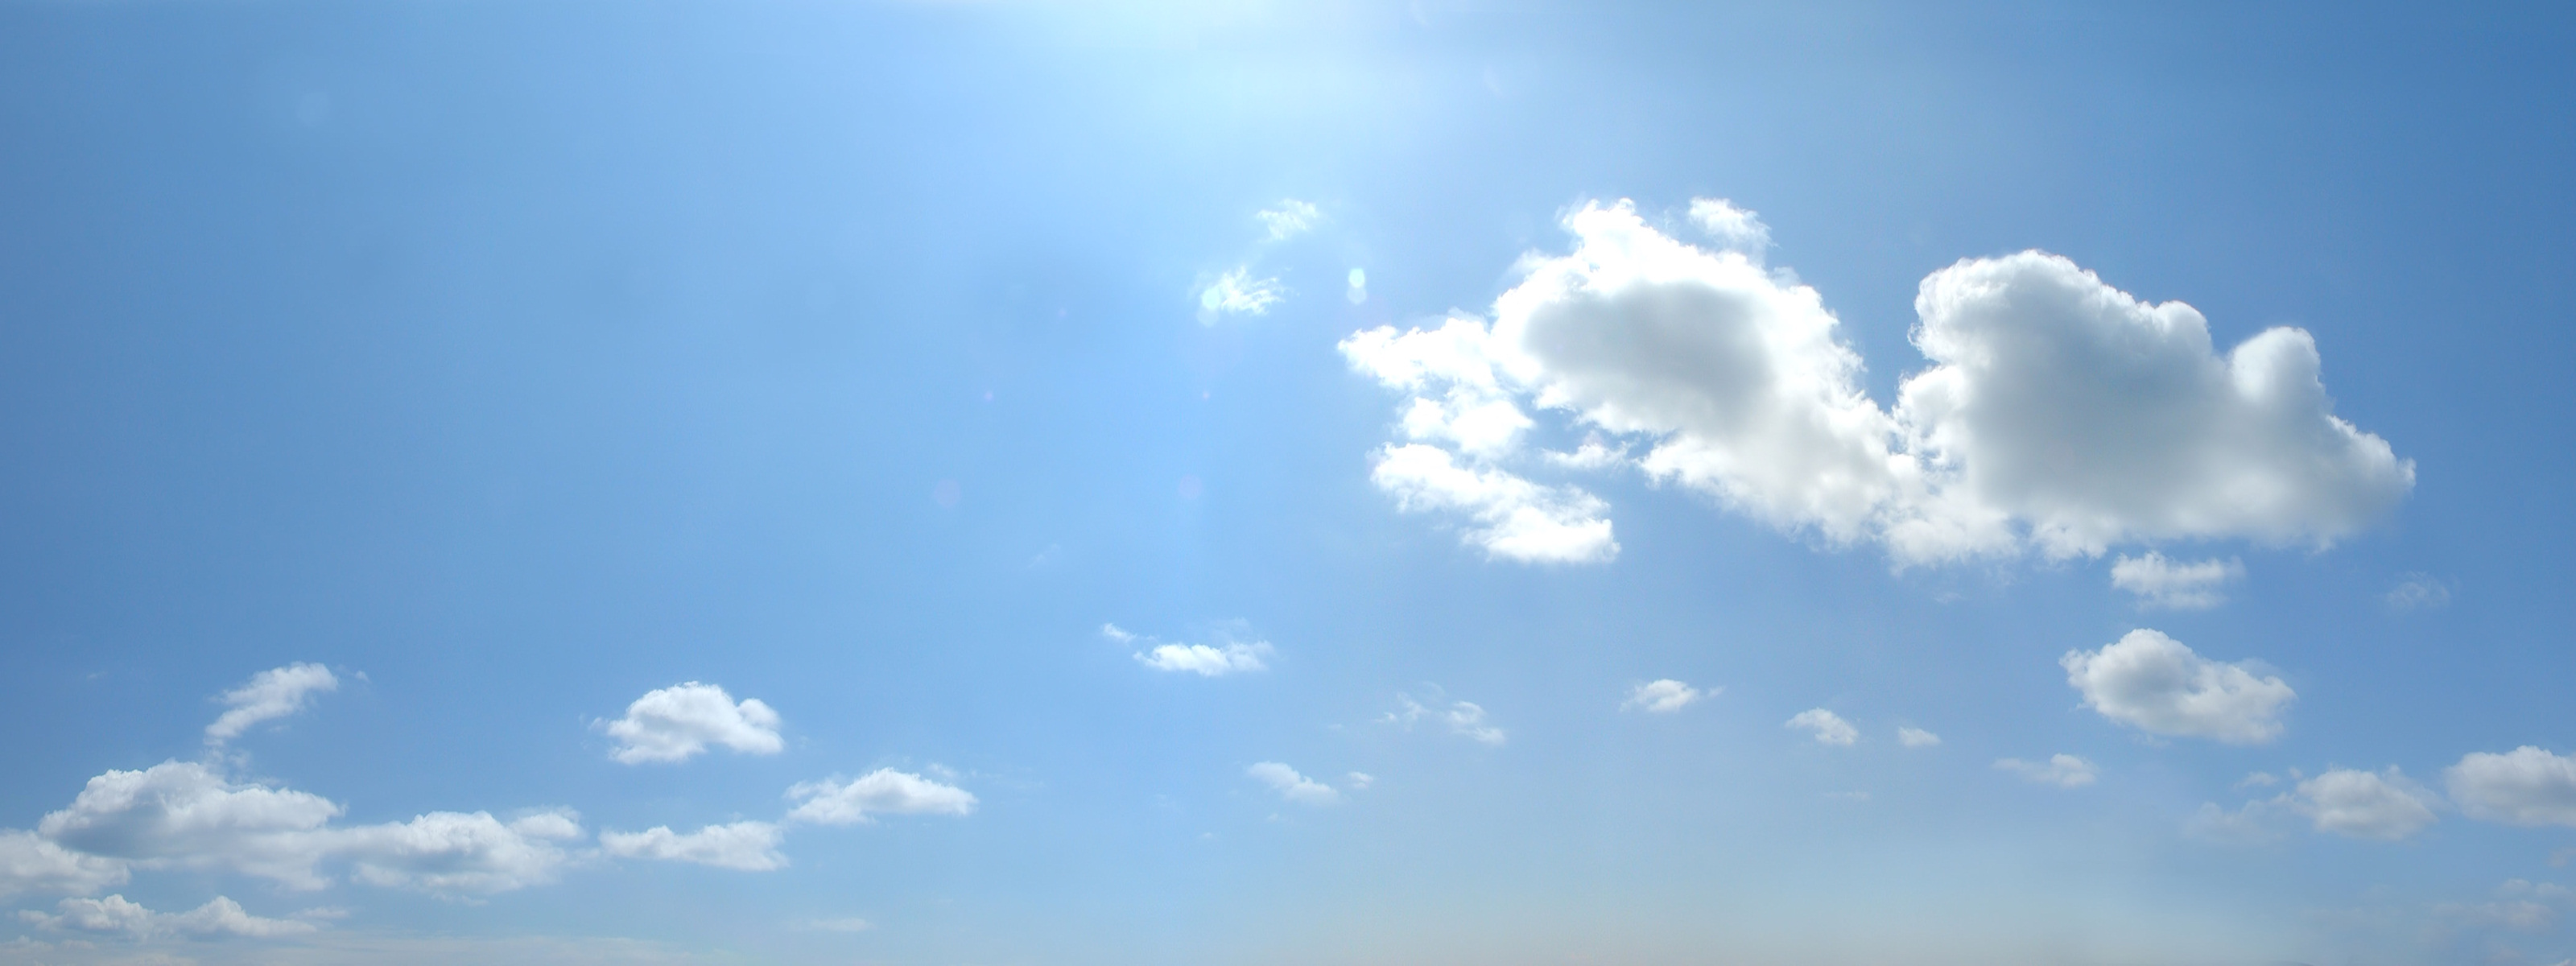 Clouds Desktop Wallpapers for HD Widescreen and Mobile Page 3200x1200